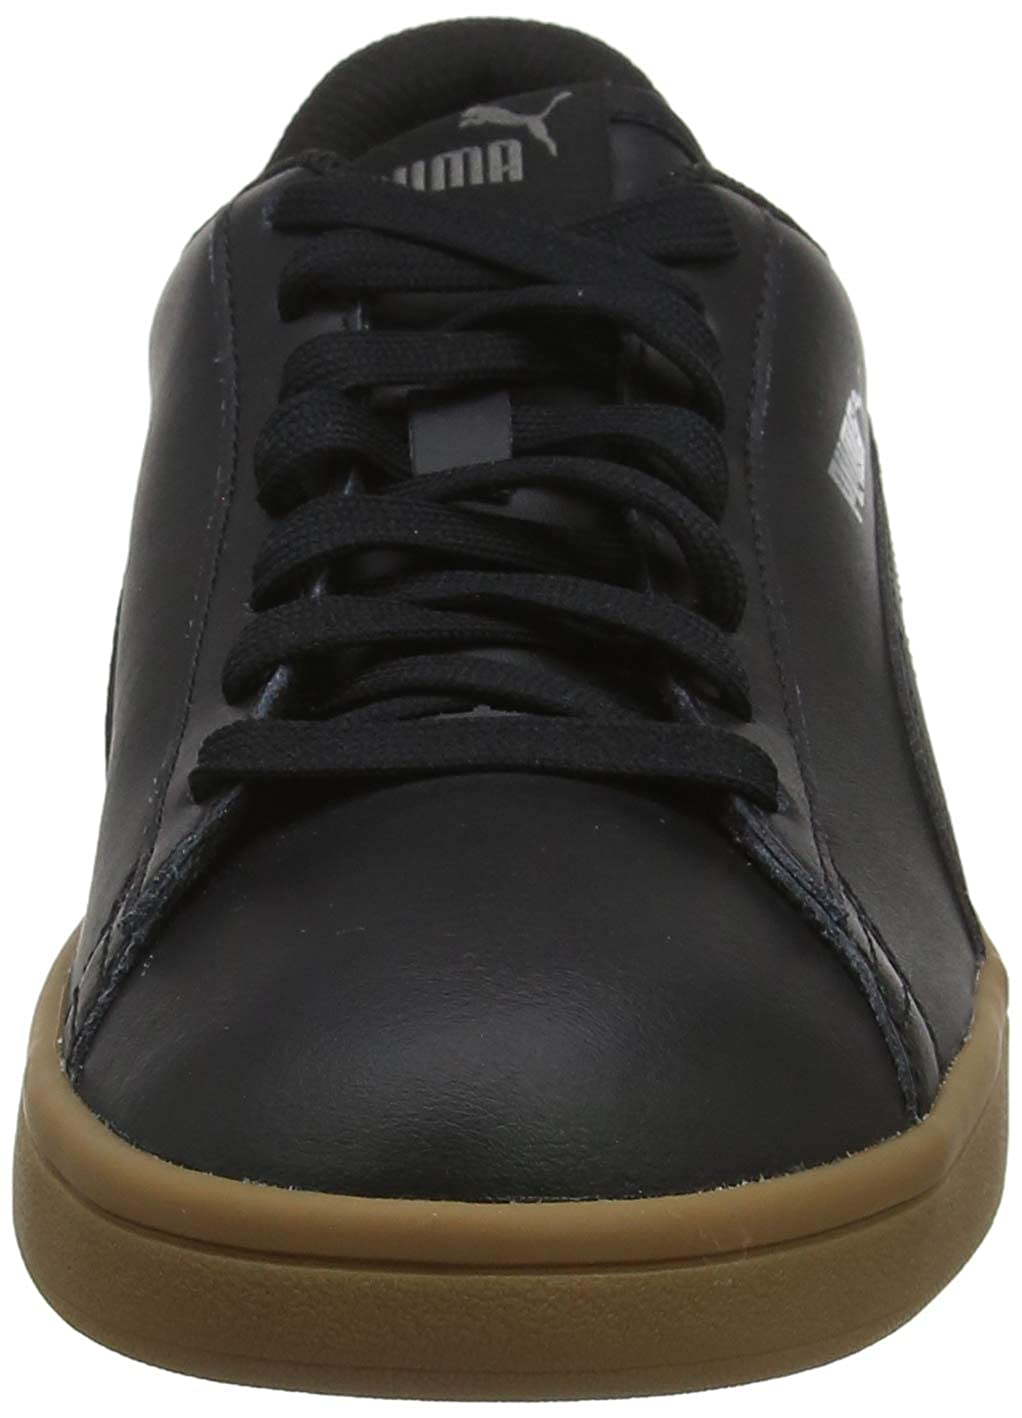 Zapatillas Unisex Adulto 45 EU Puma Smash V2 L Negro Black-Gum 12